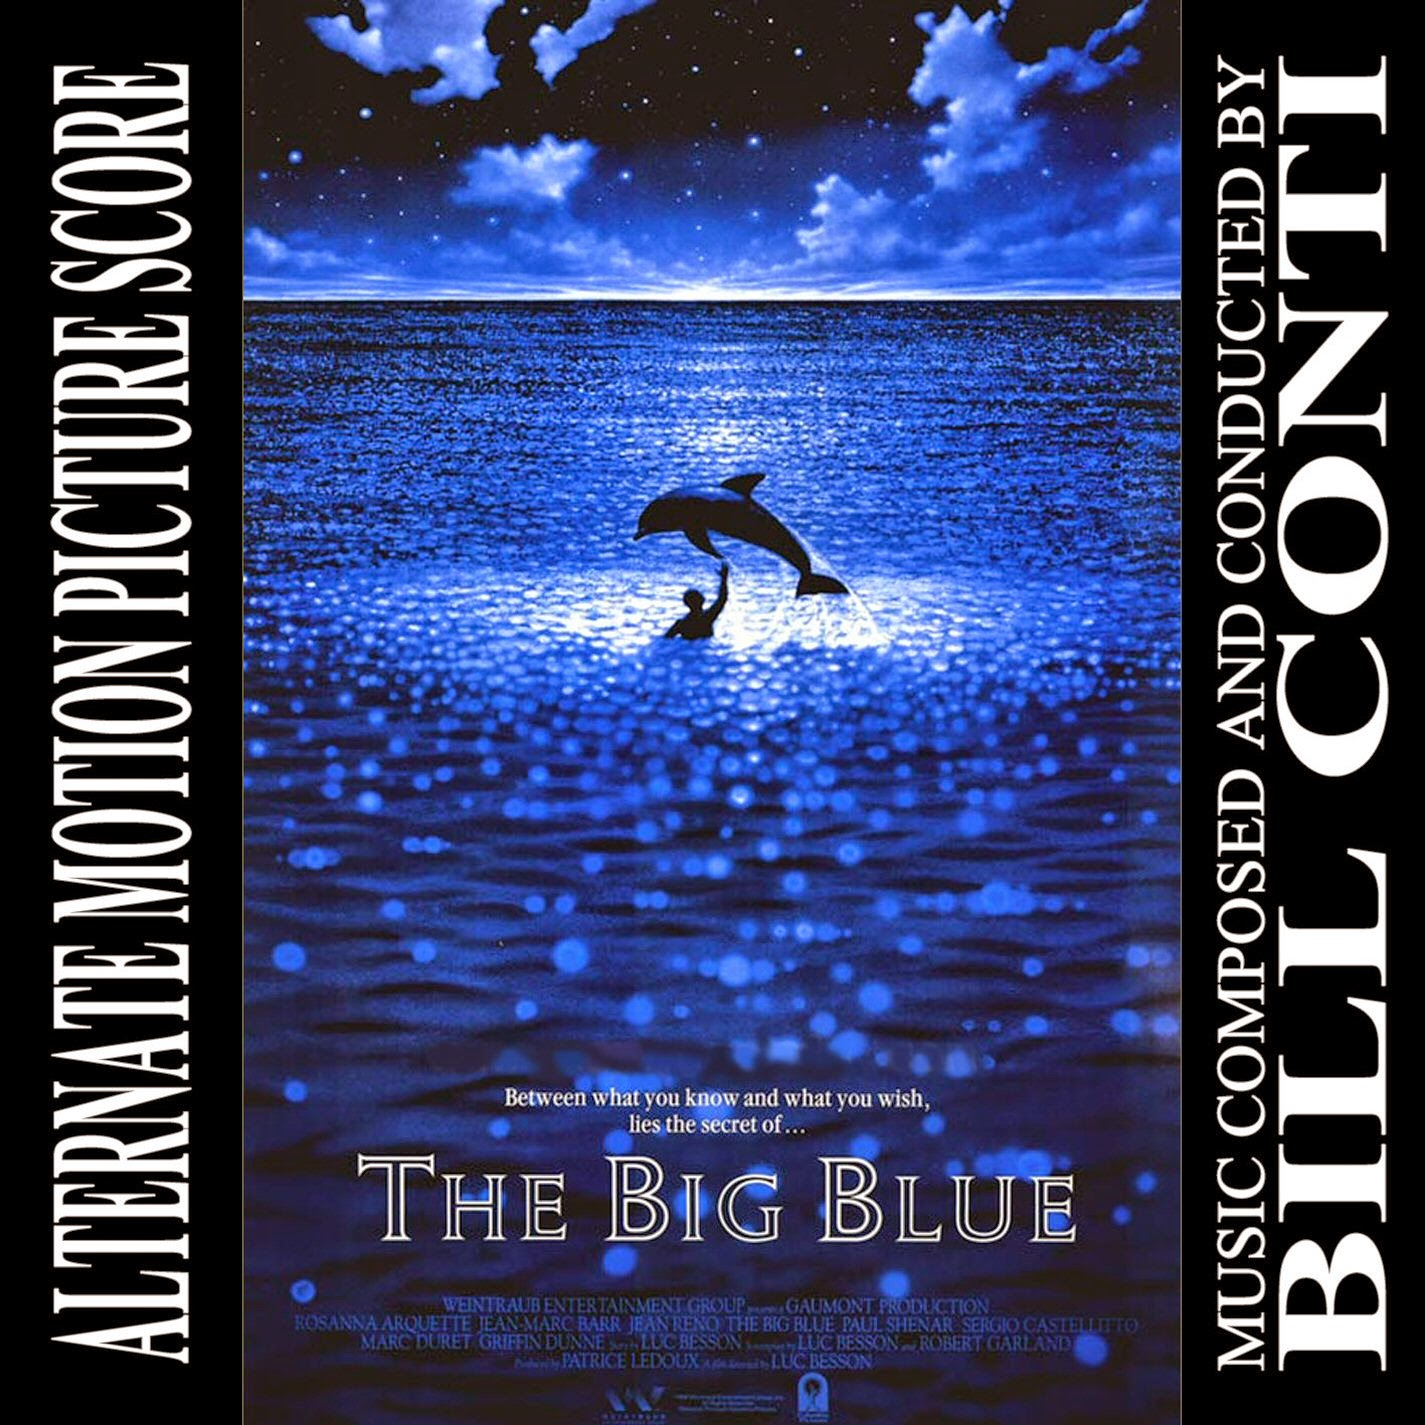 Bill Conti The Big Blue, Luc Besson's The Big Blue soundtrack